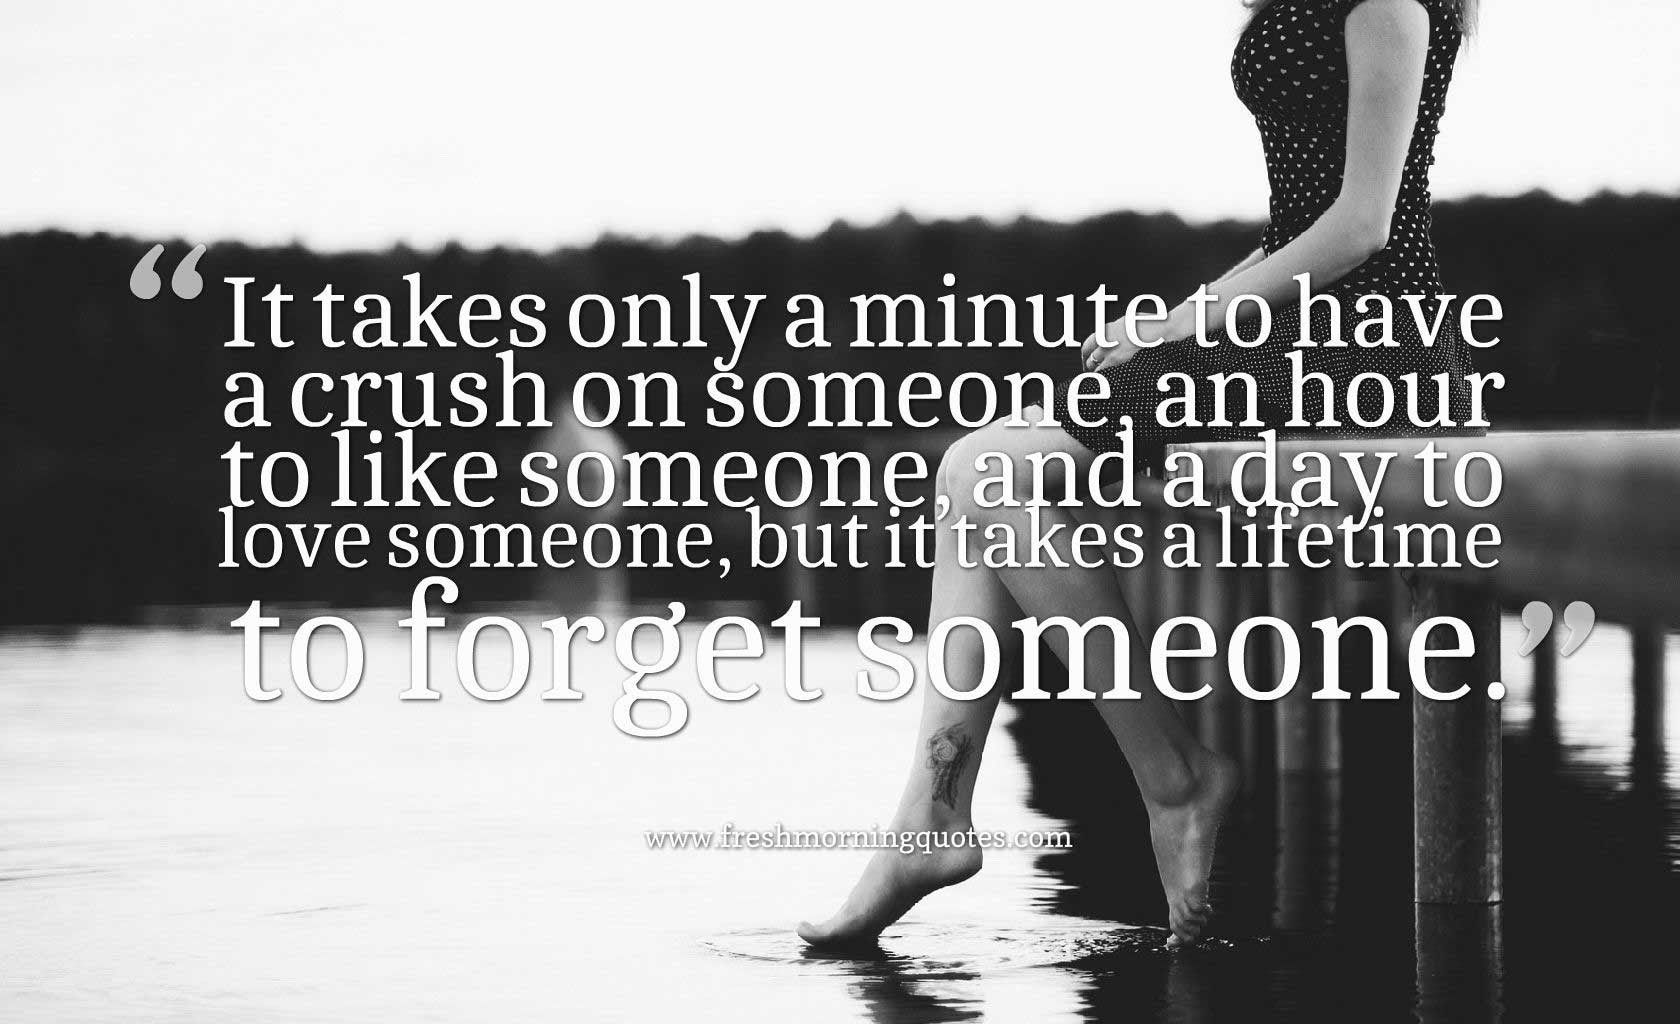 Sad Love Quotes that Will Make You Cry | Thousands of Inspiration Quotes About Love and Life